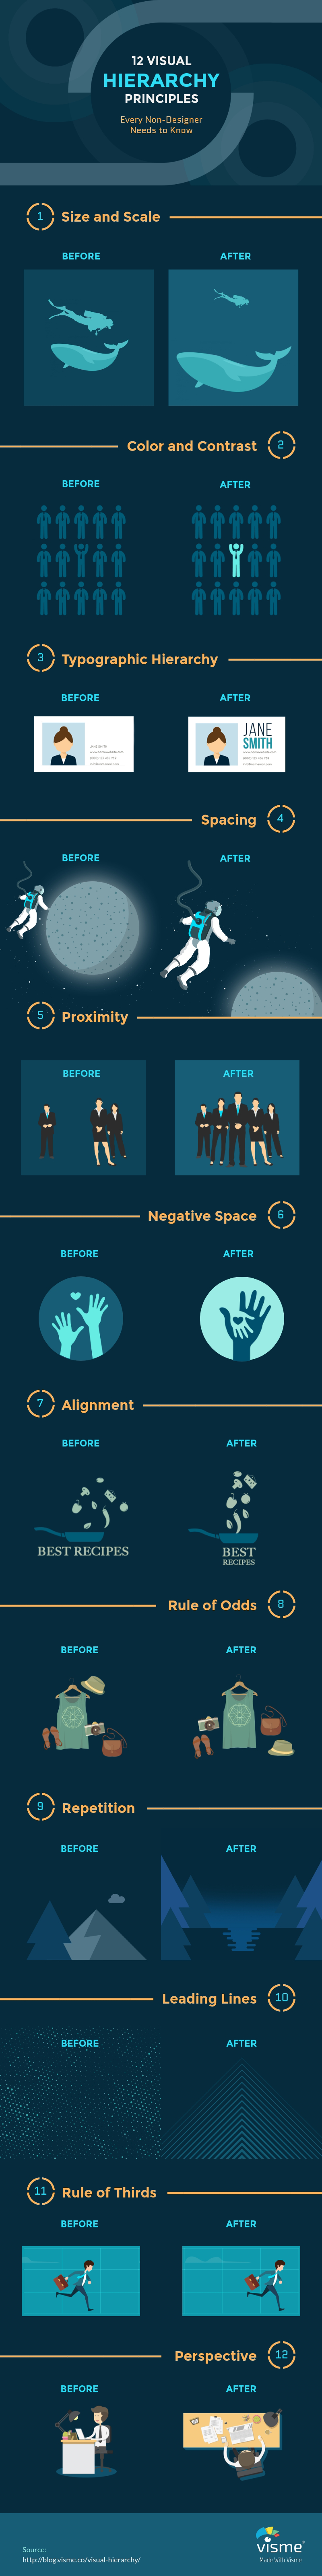 An infographic showcasing 12 visual hierarchy principles.